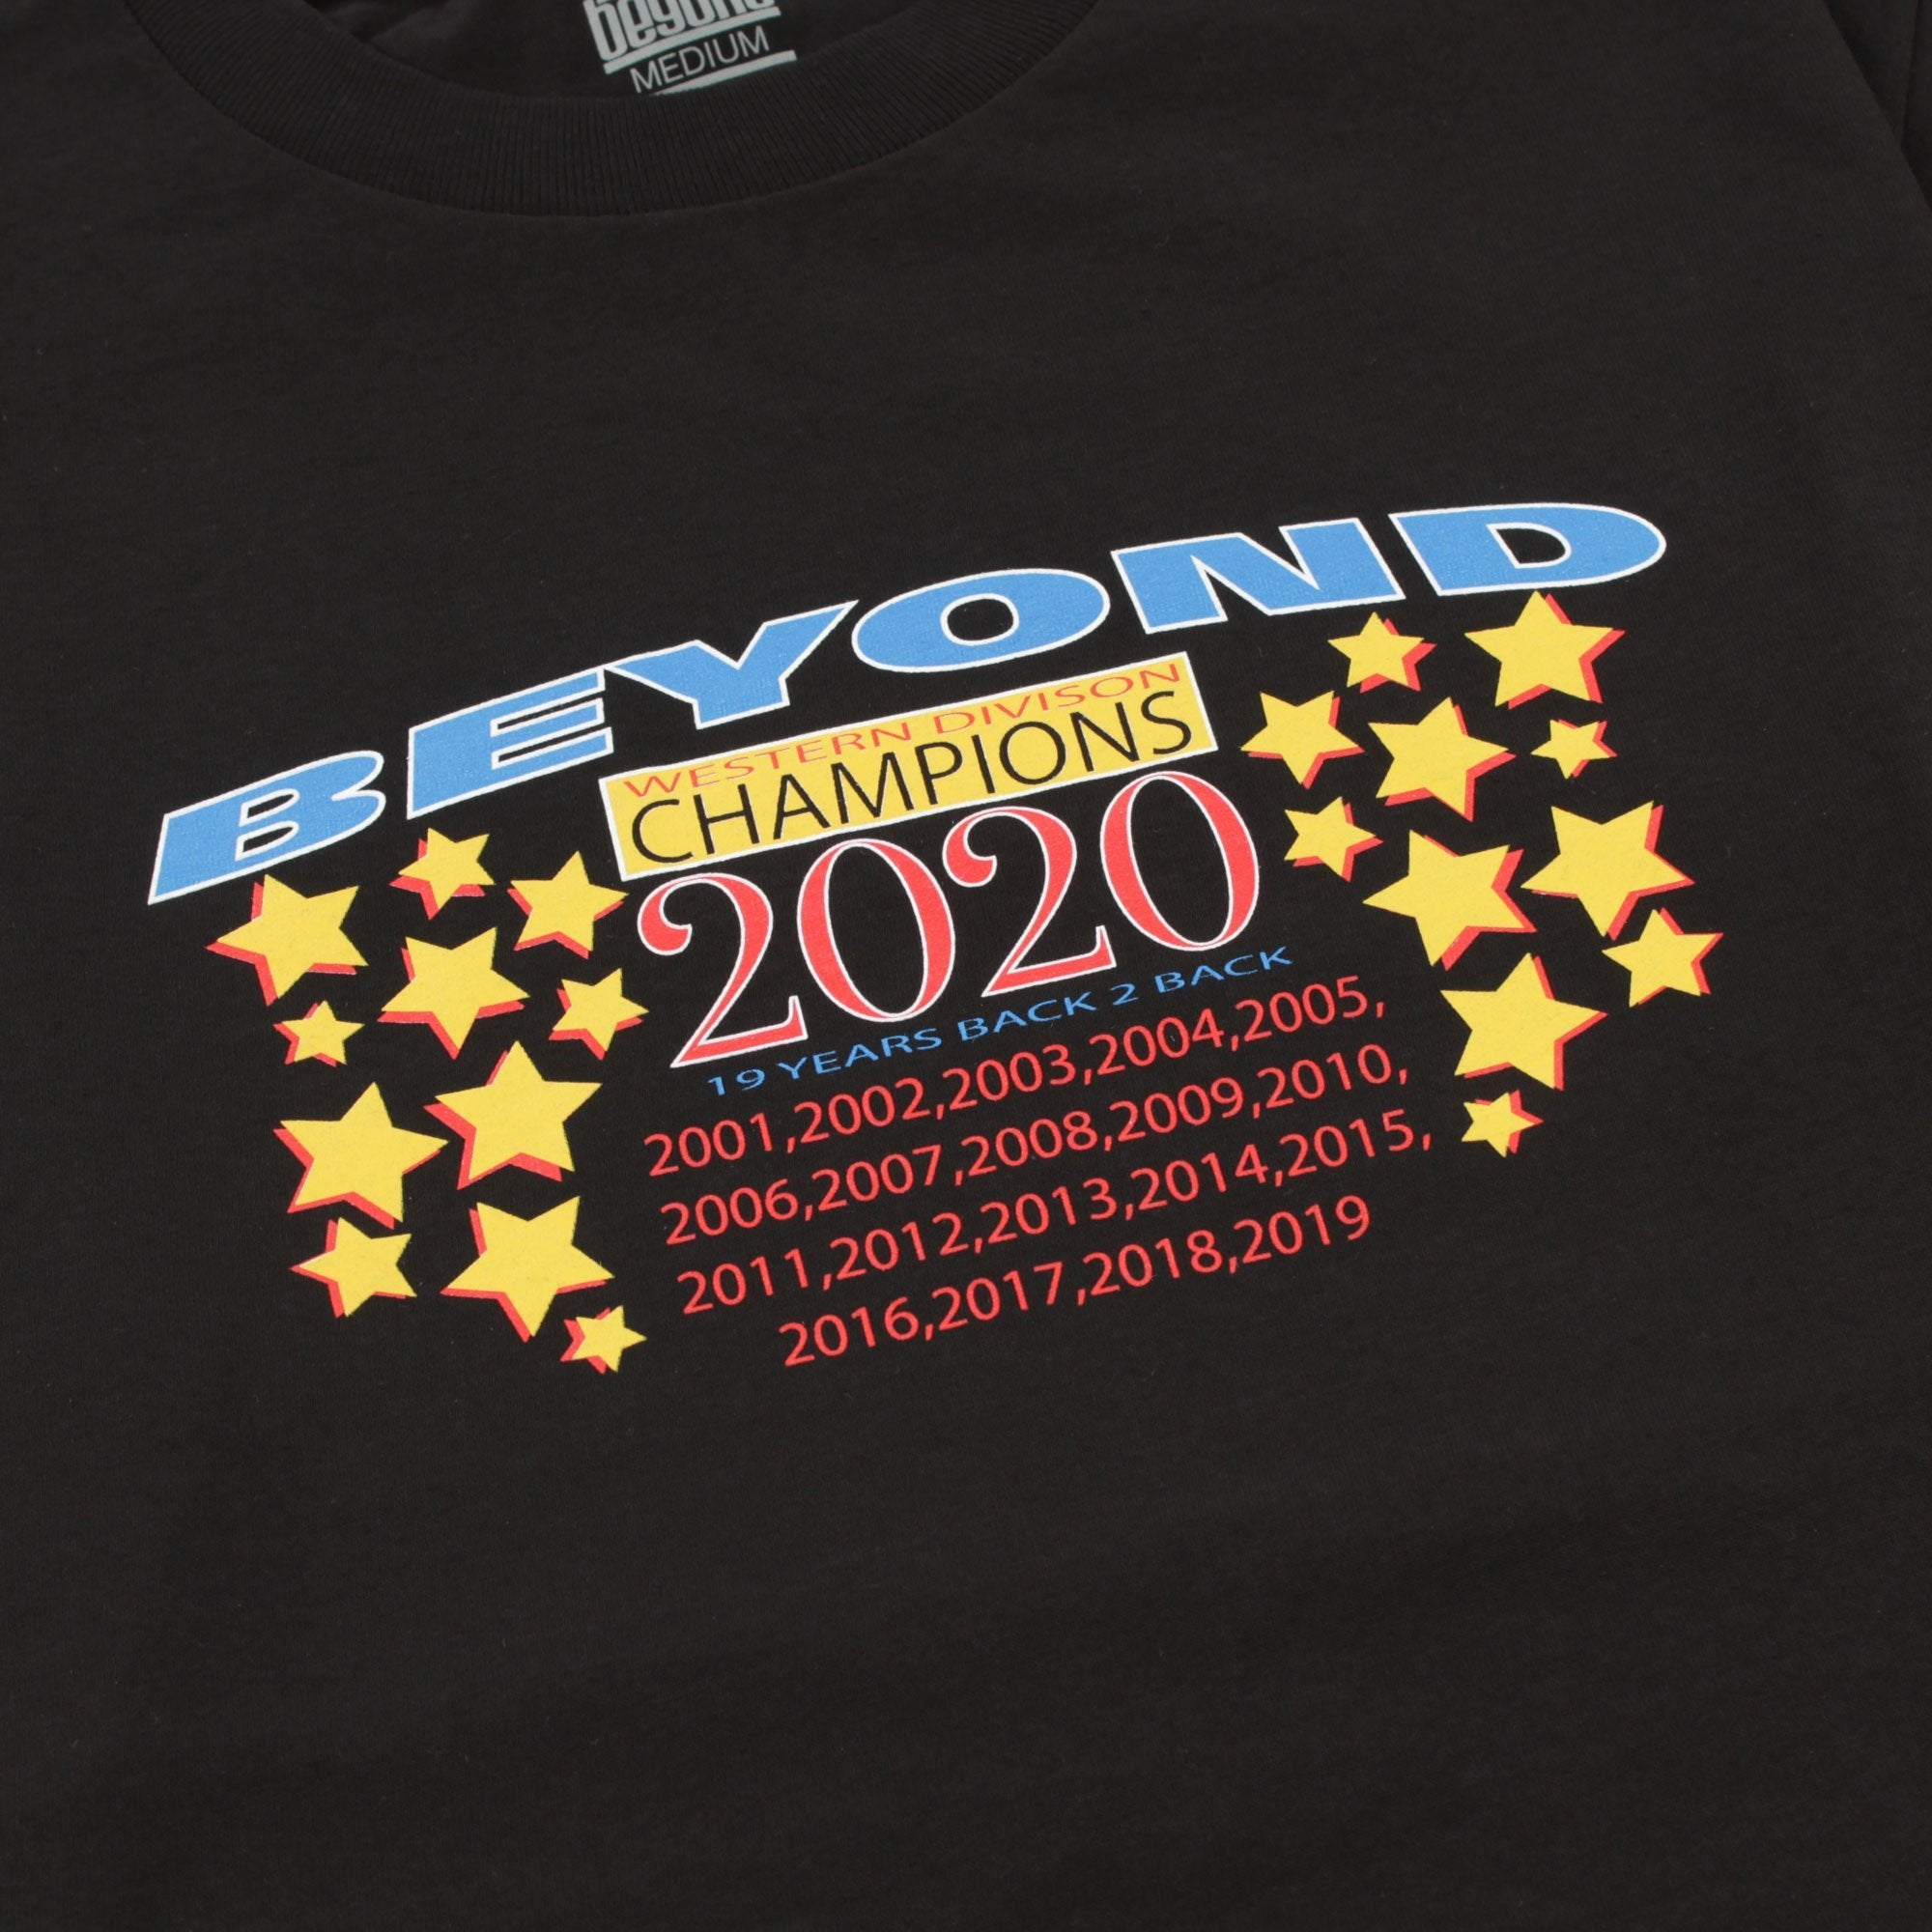 Beyond Back 2 Back Tee Product Photo #2